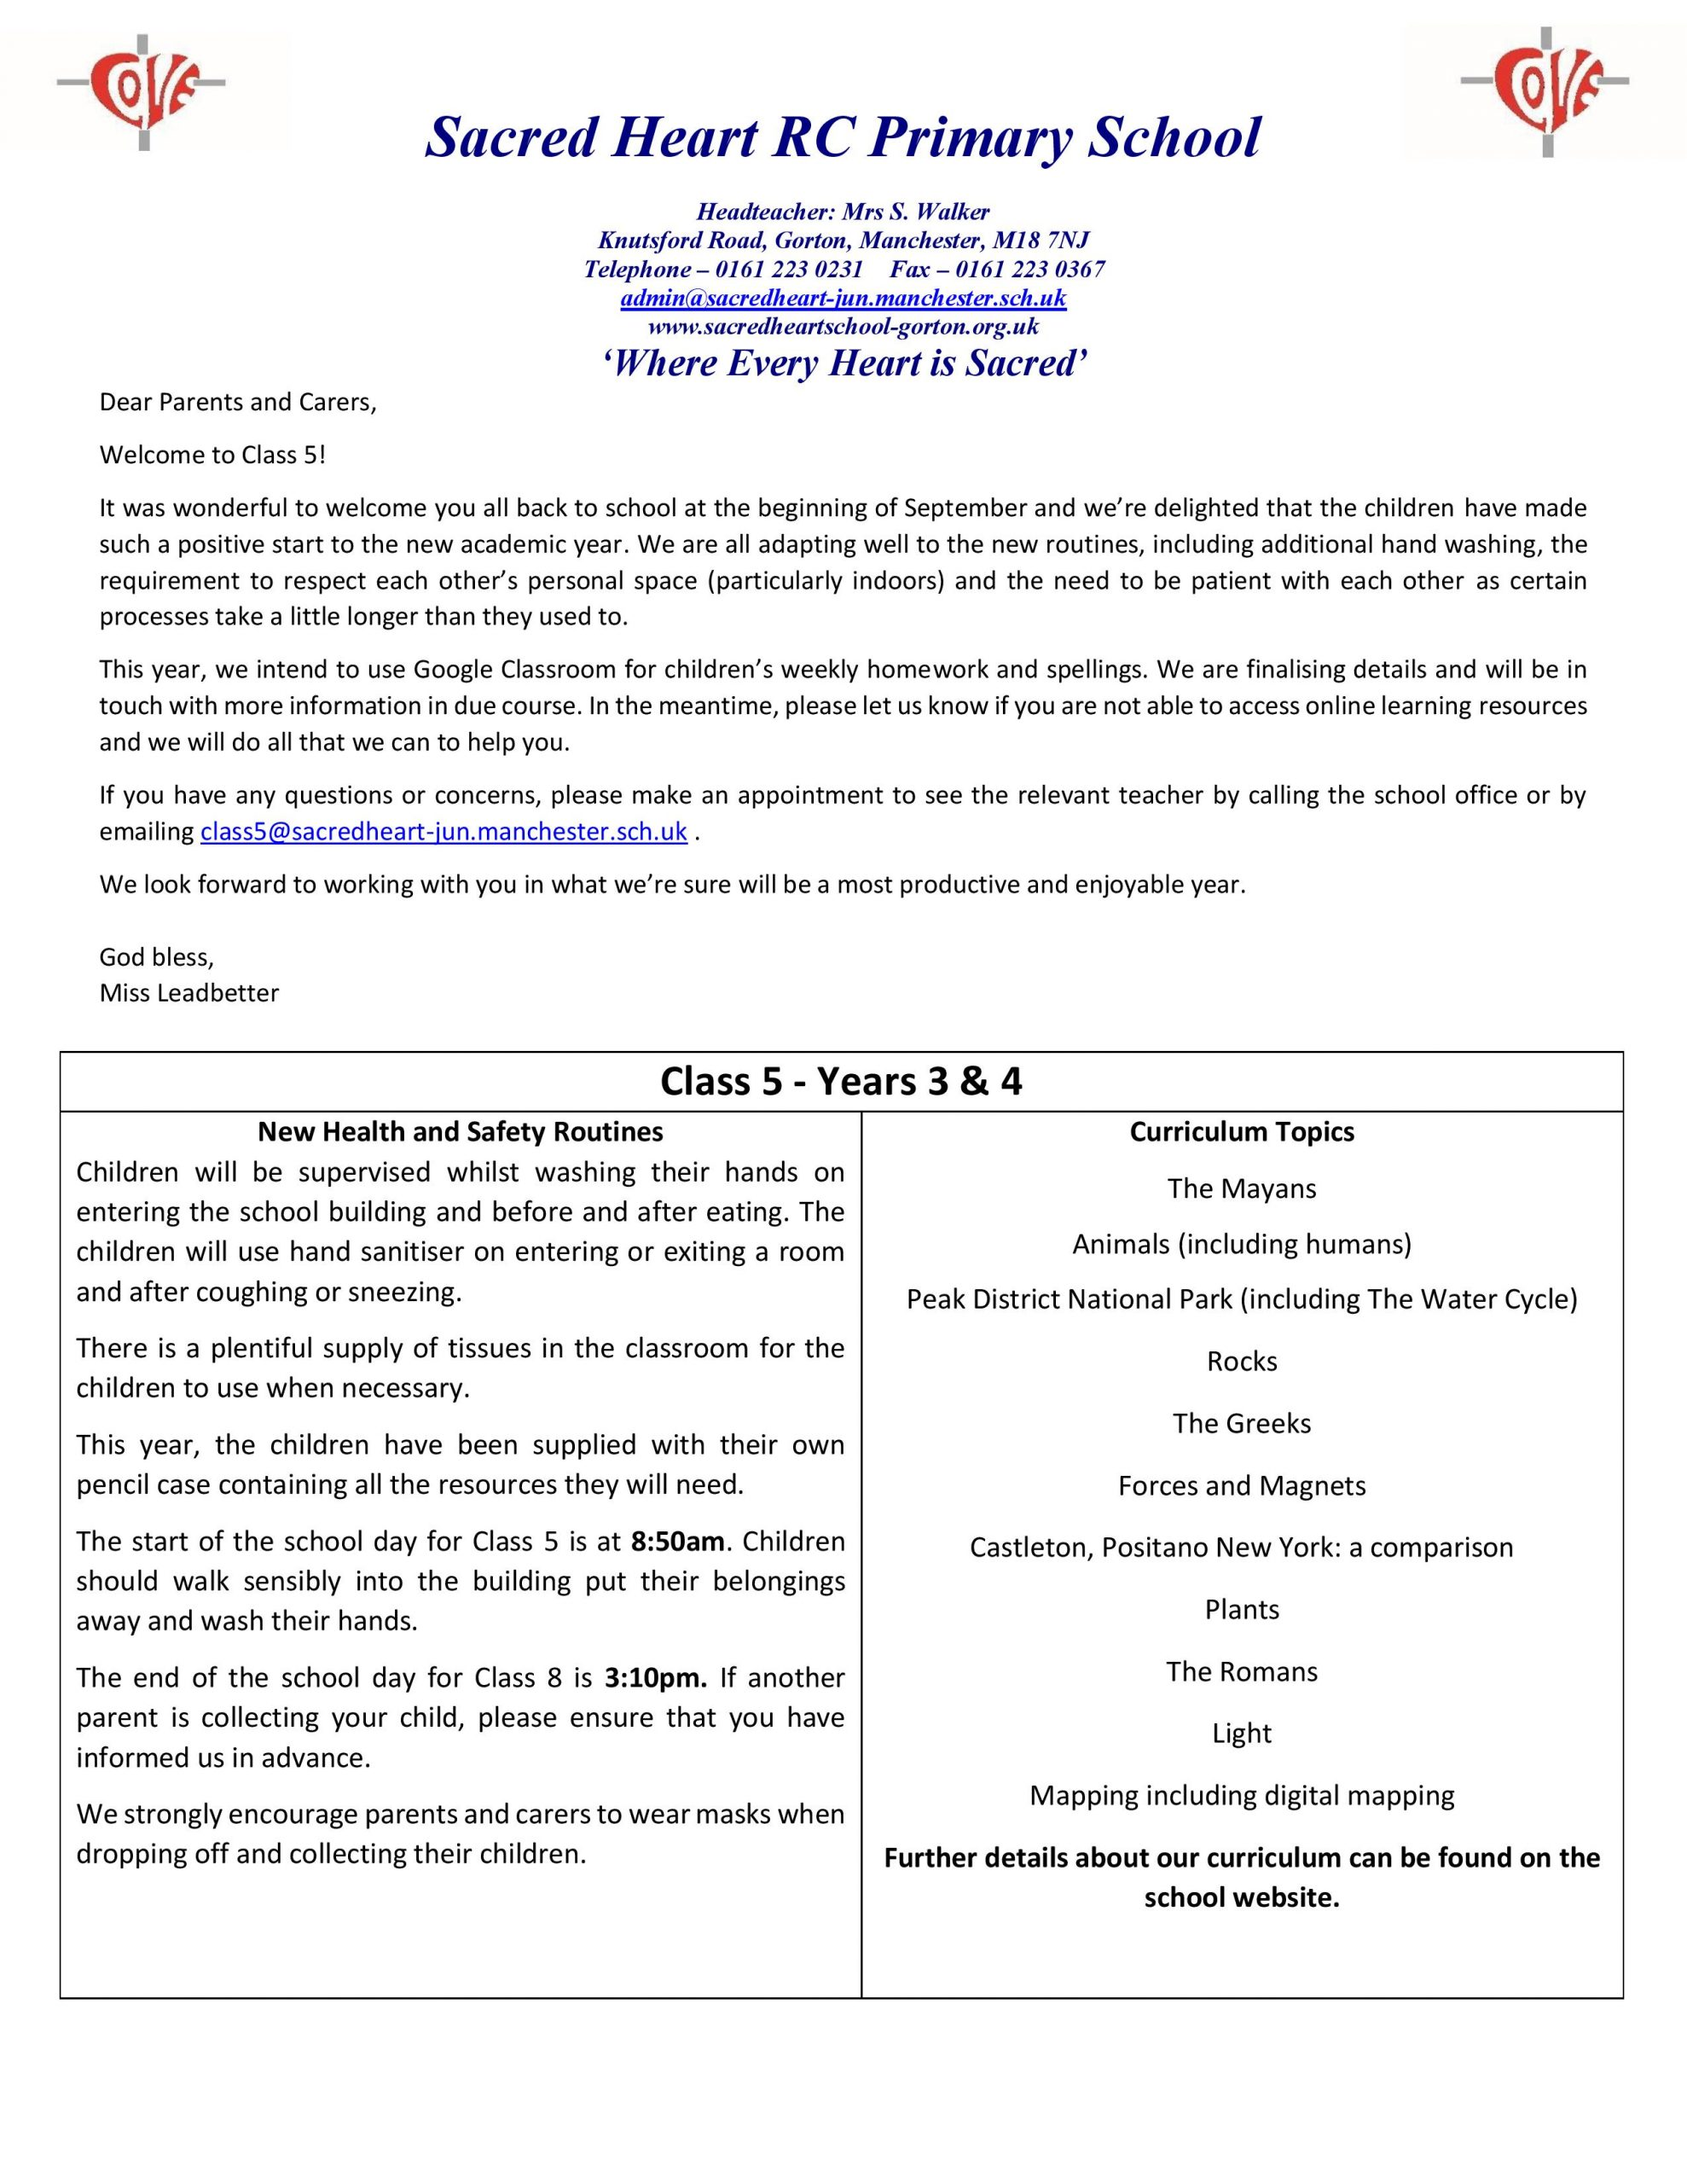 Class 5 Home Learning Guidance